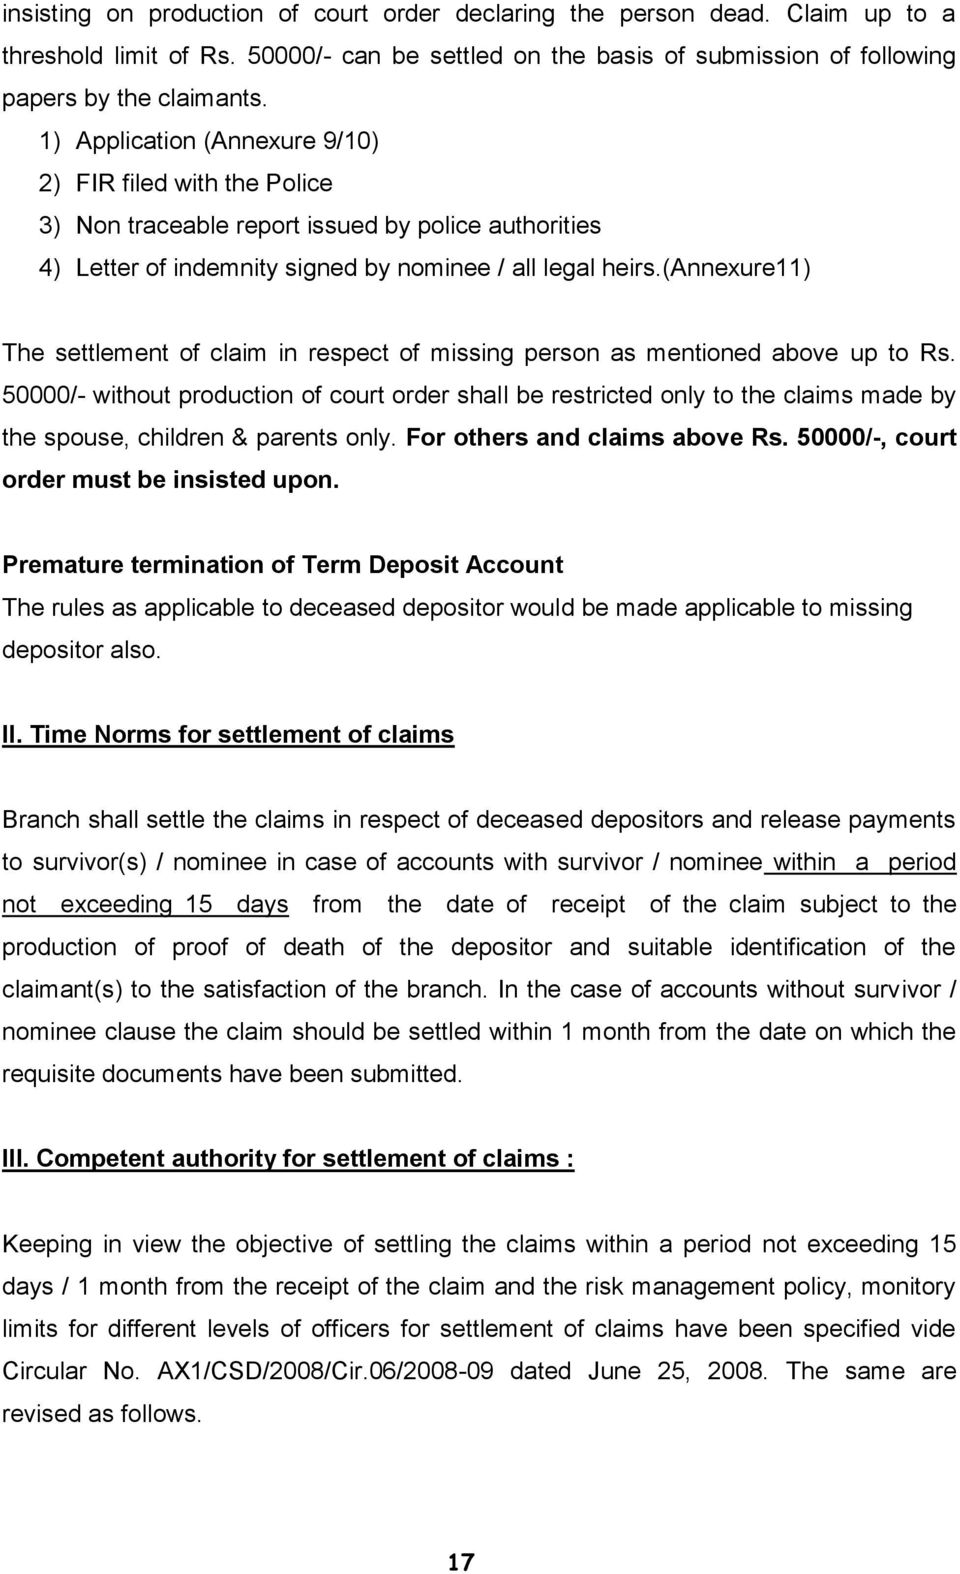 indemnity bond format for lost fixed deposit receipt